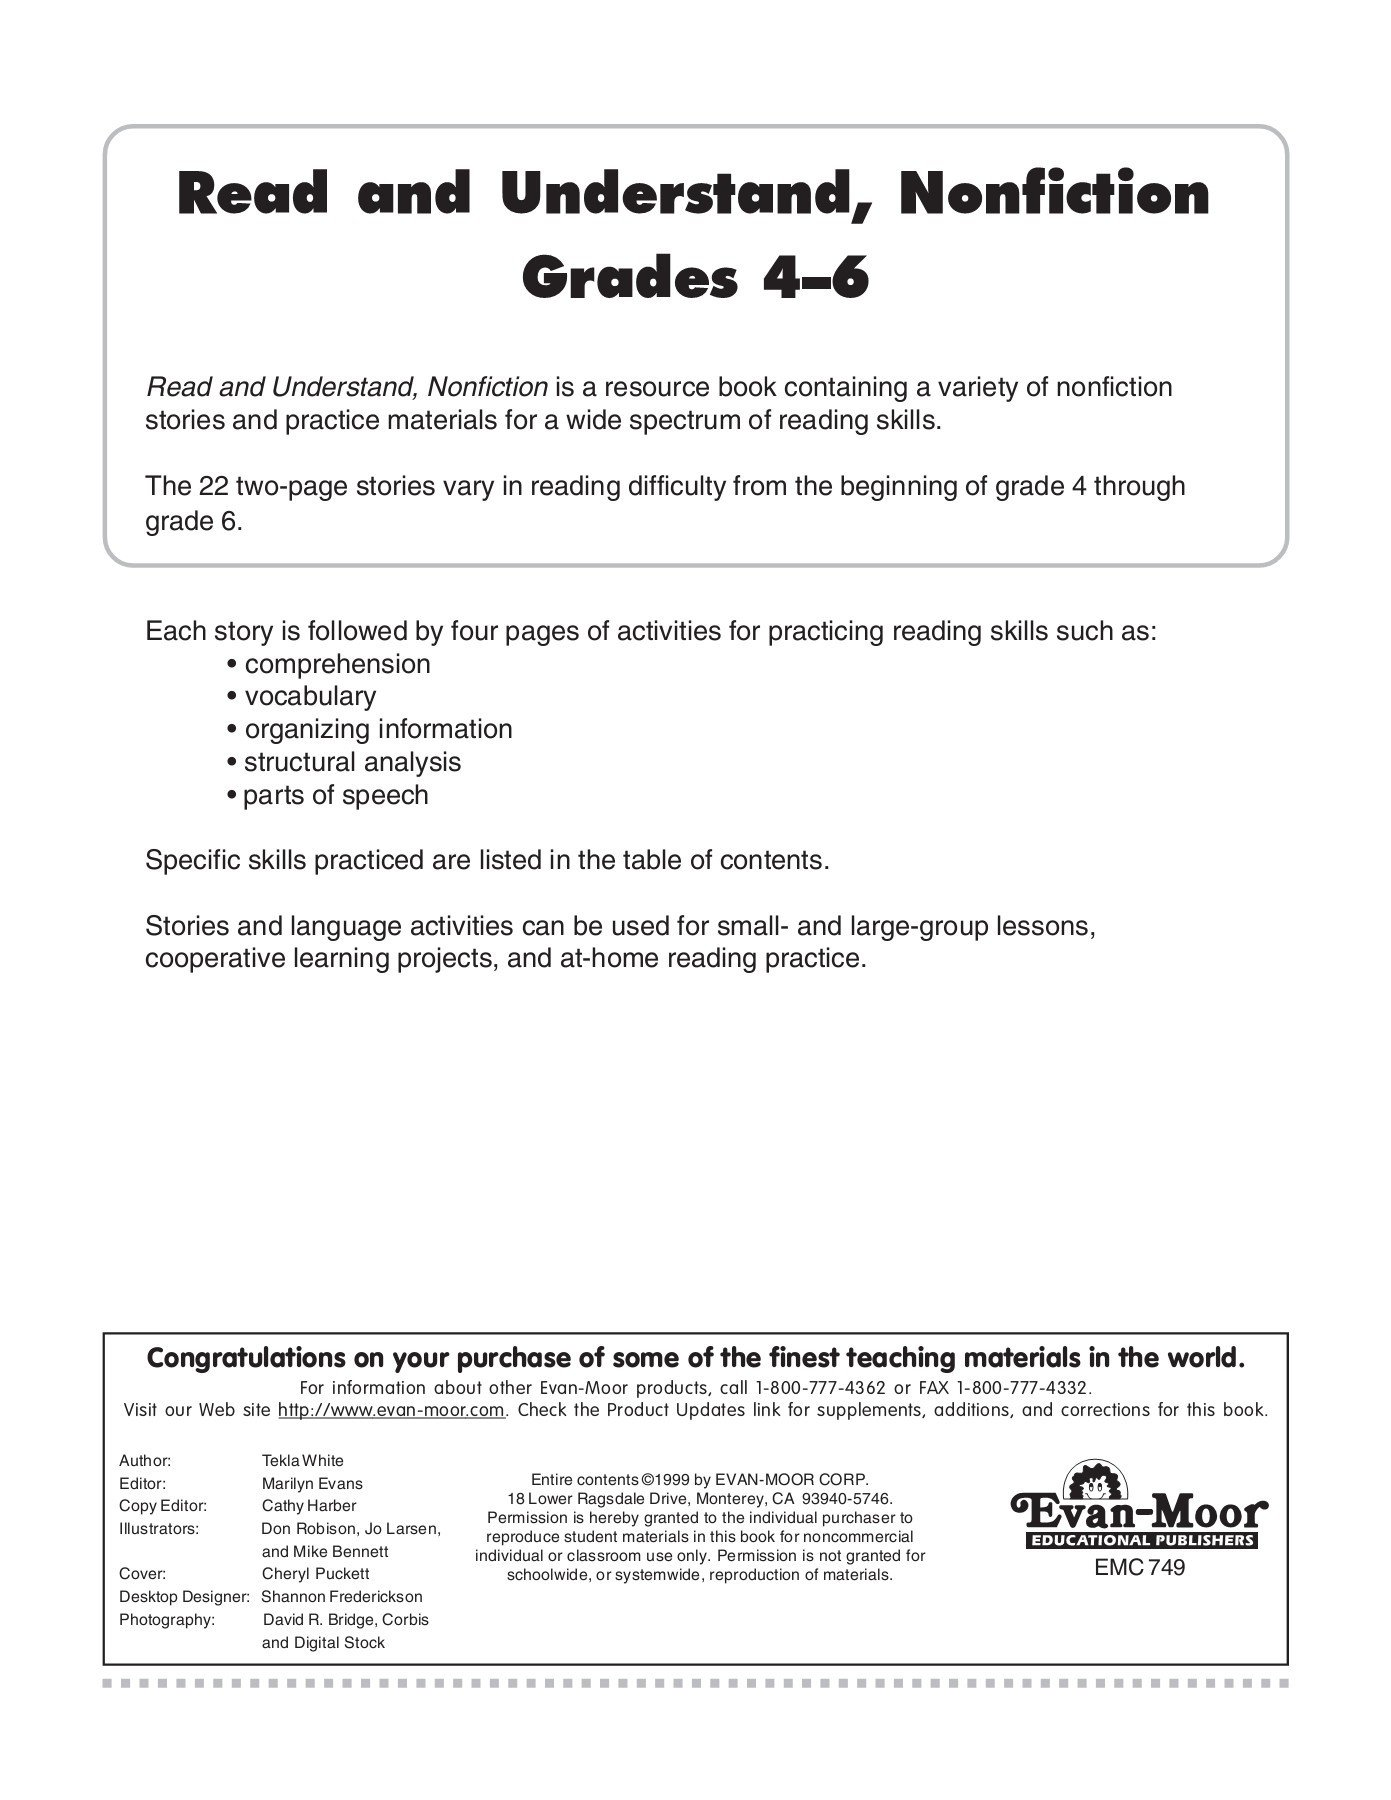 Fiction and Nonfiction Worksheets Pdf Read and Understand Nonfiction Grades Text Evan Moor Corp